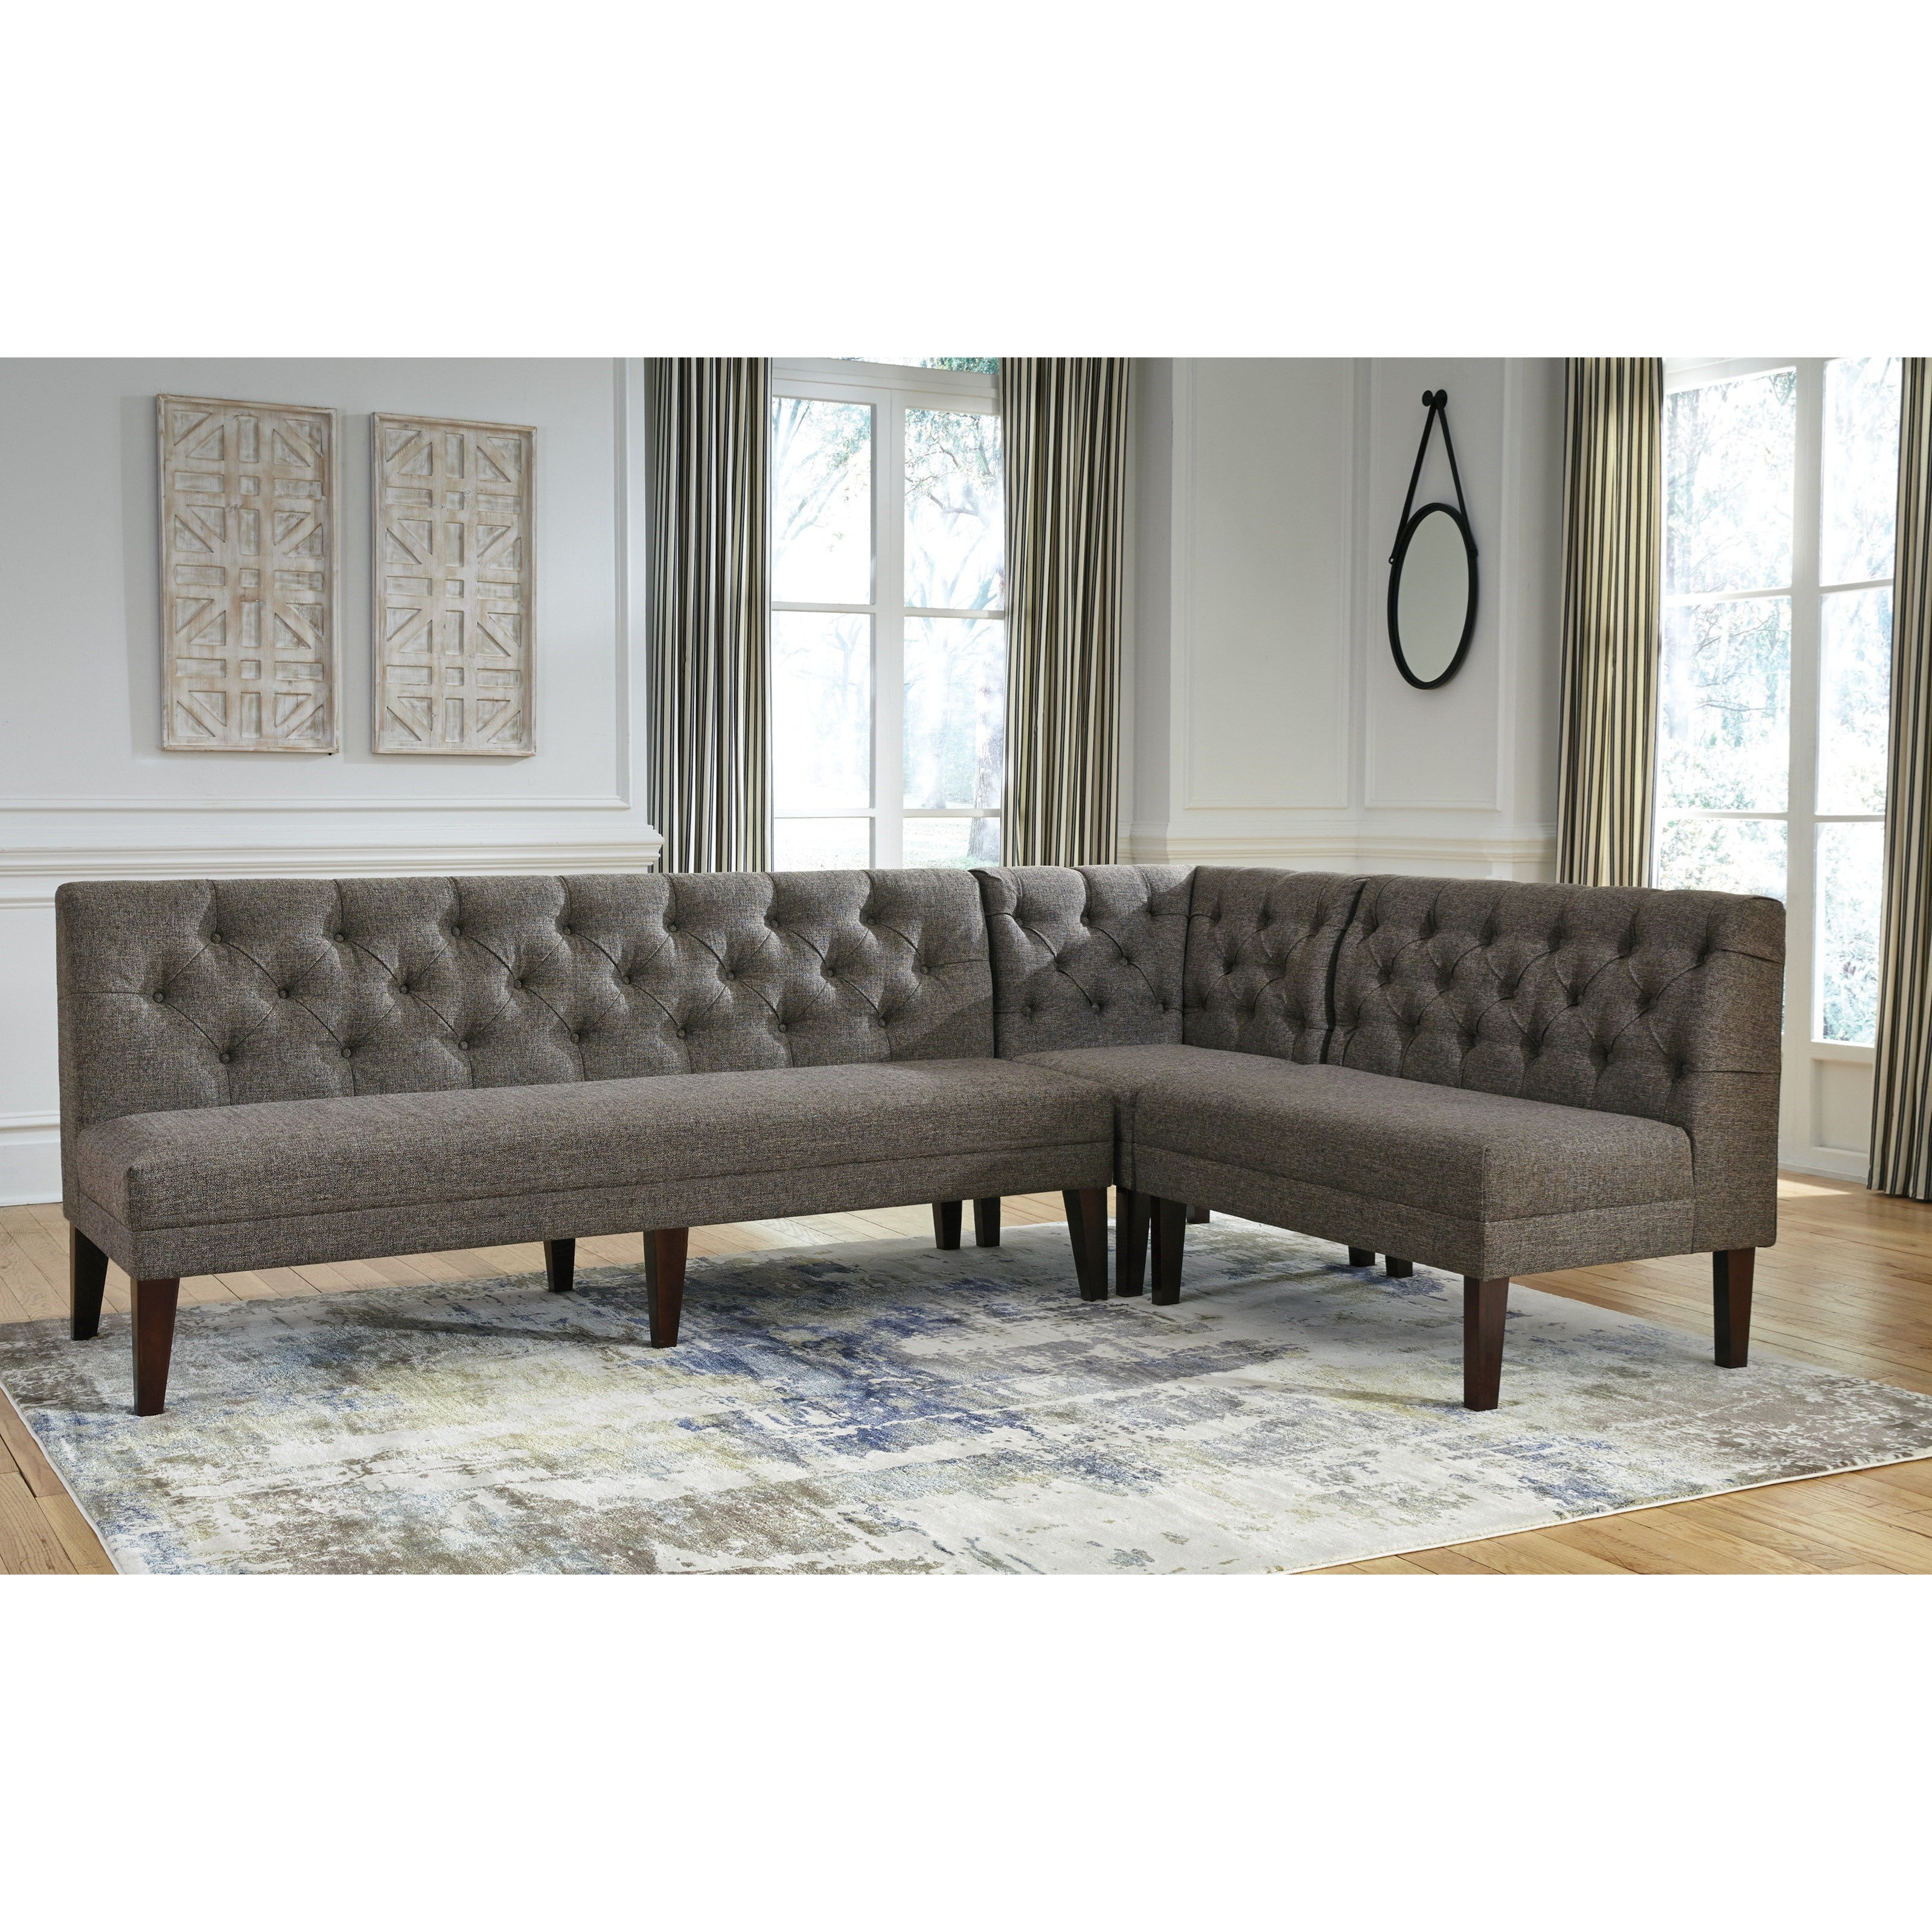 Best Banquette Online: 3-Piece Upholstered Banquette Set By Signature Design By